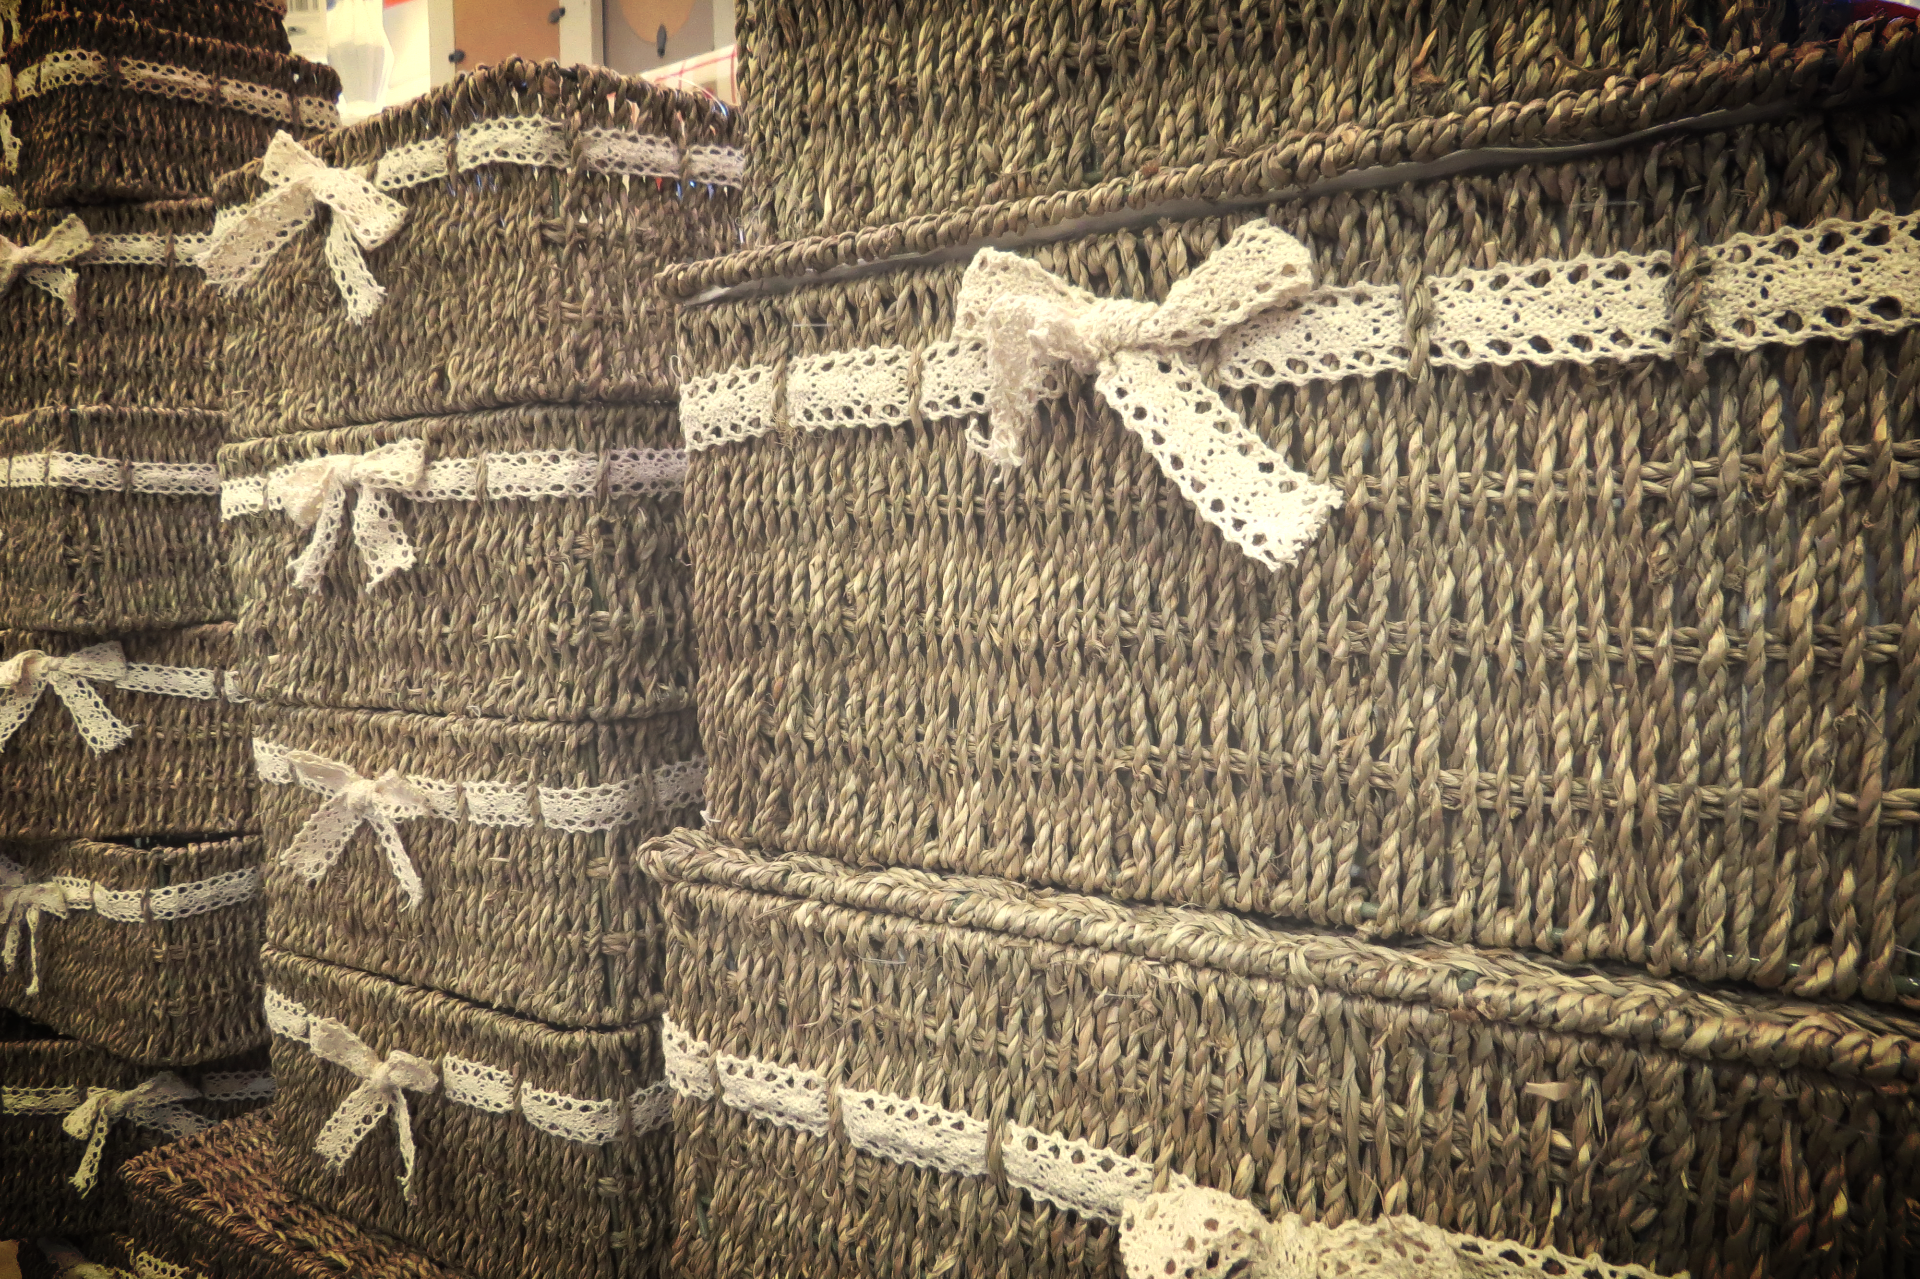 Basketry area